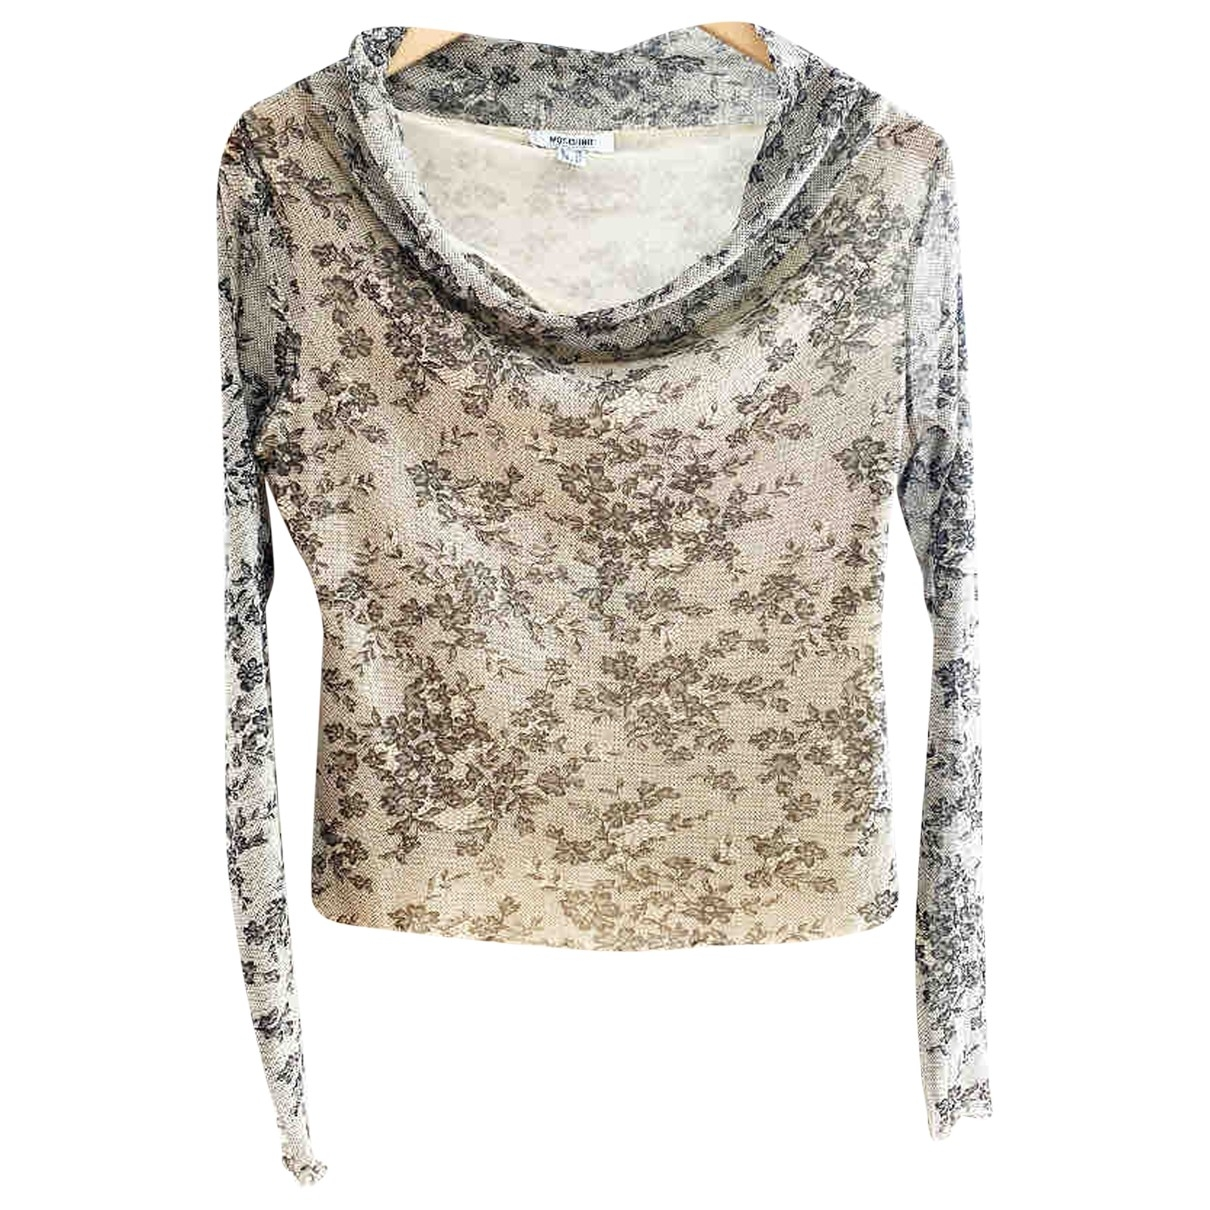 Moschino Cheap And Chic \N Grey  top for Women L International